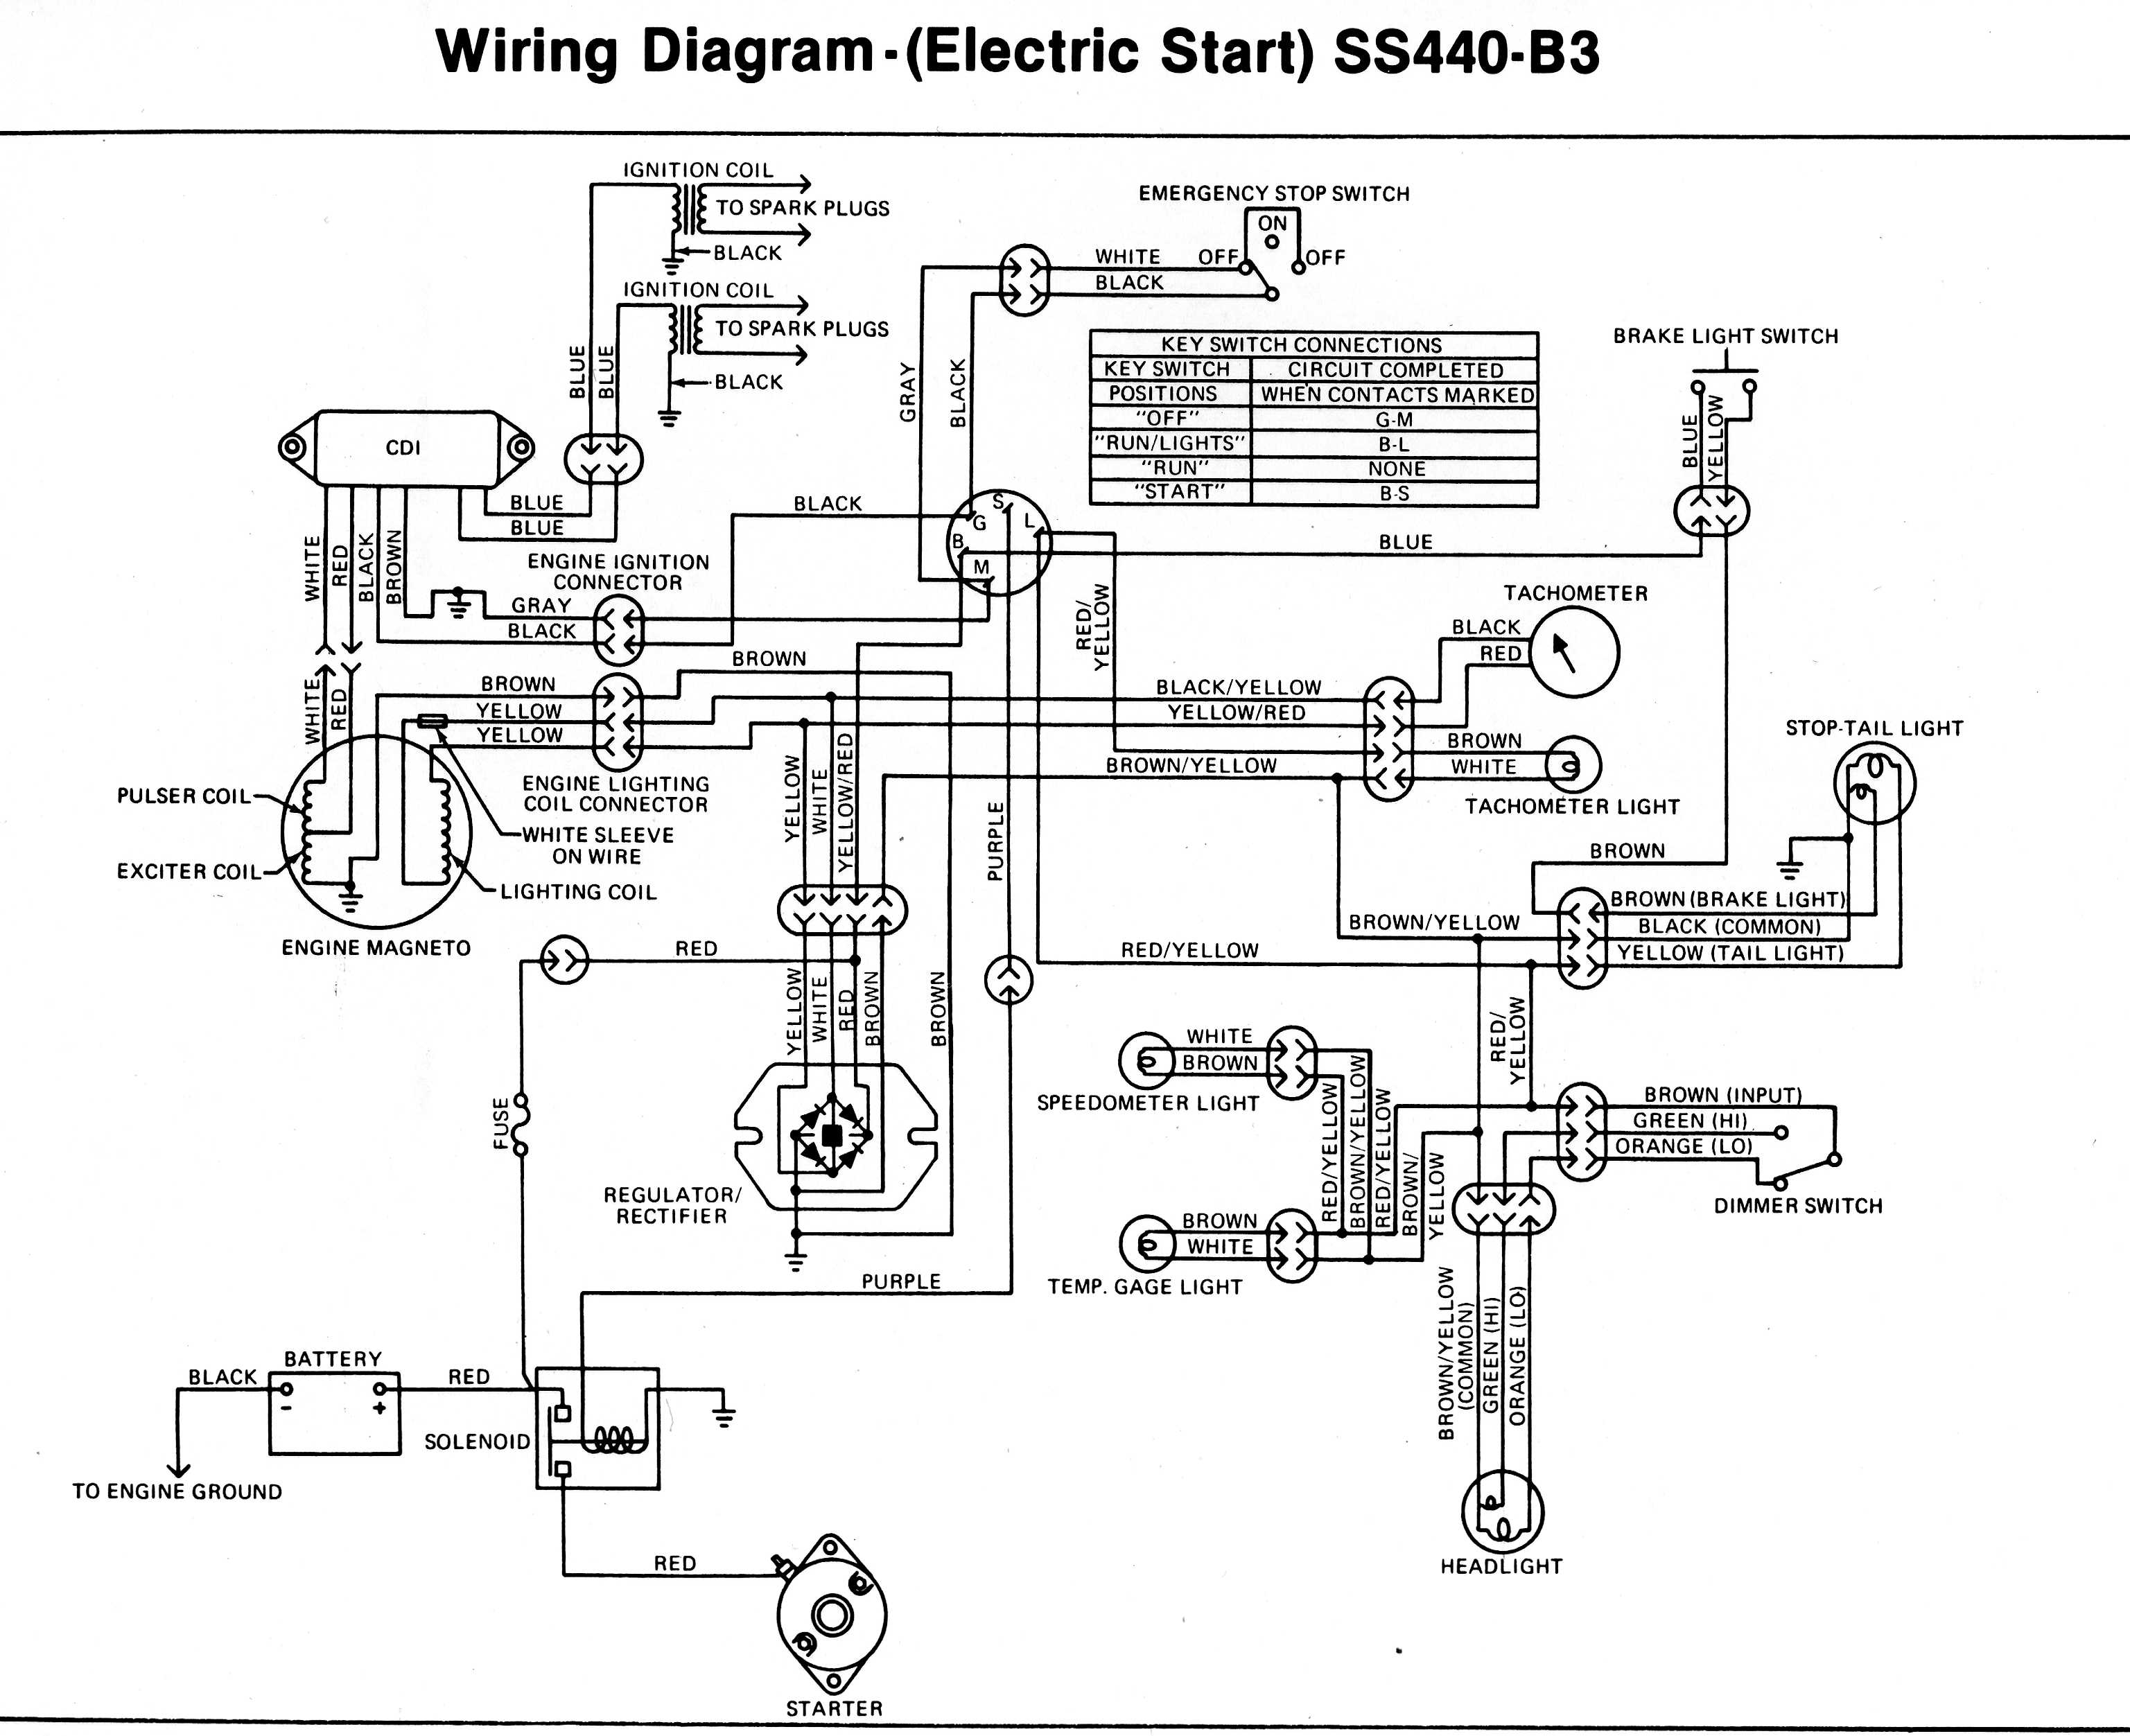 1986 winnebago wiring diagram